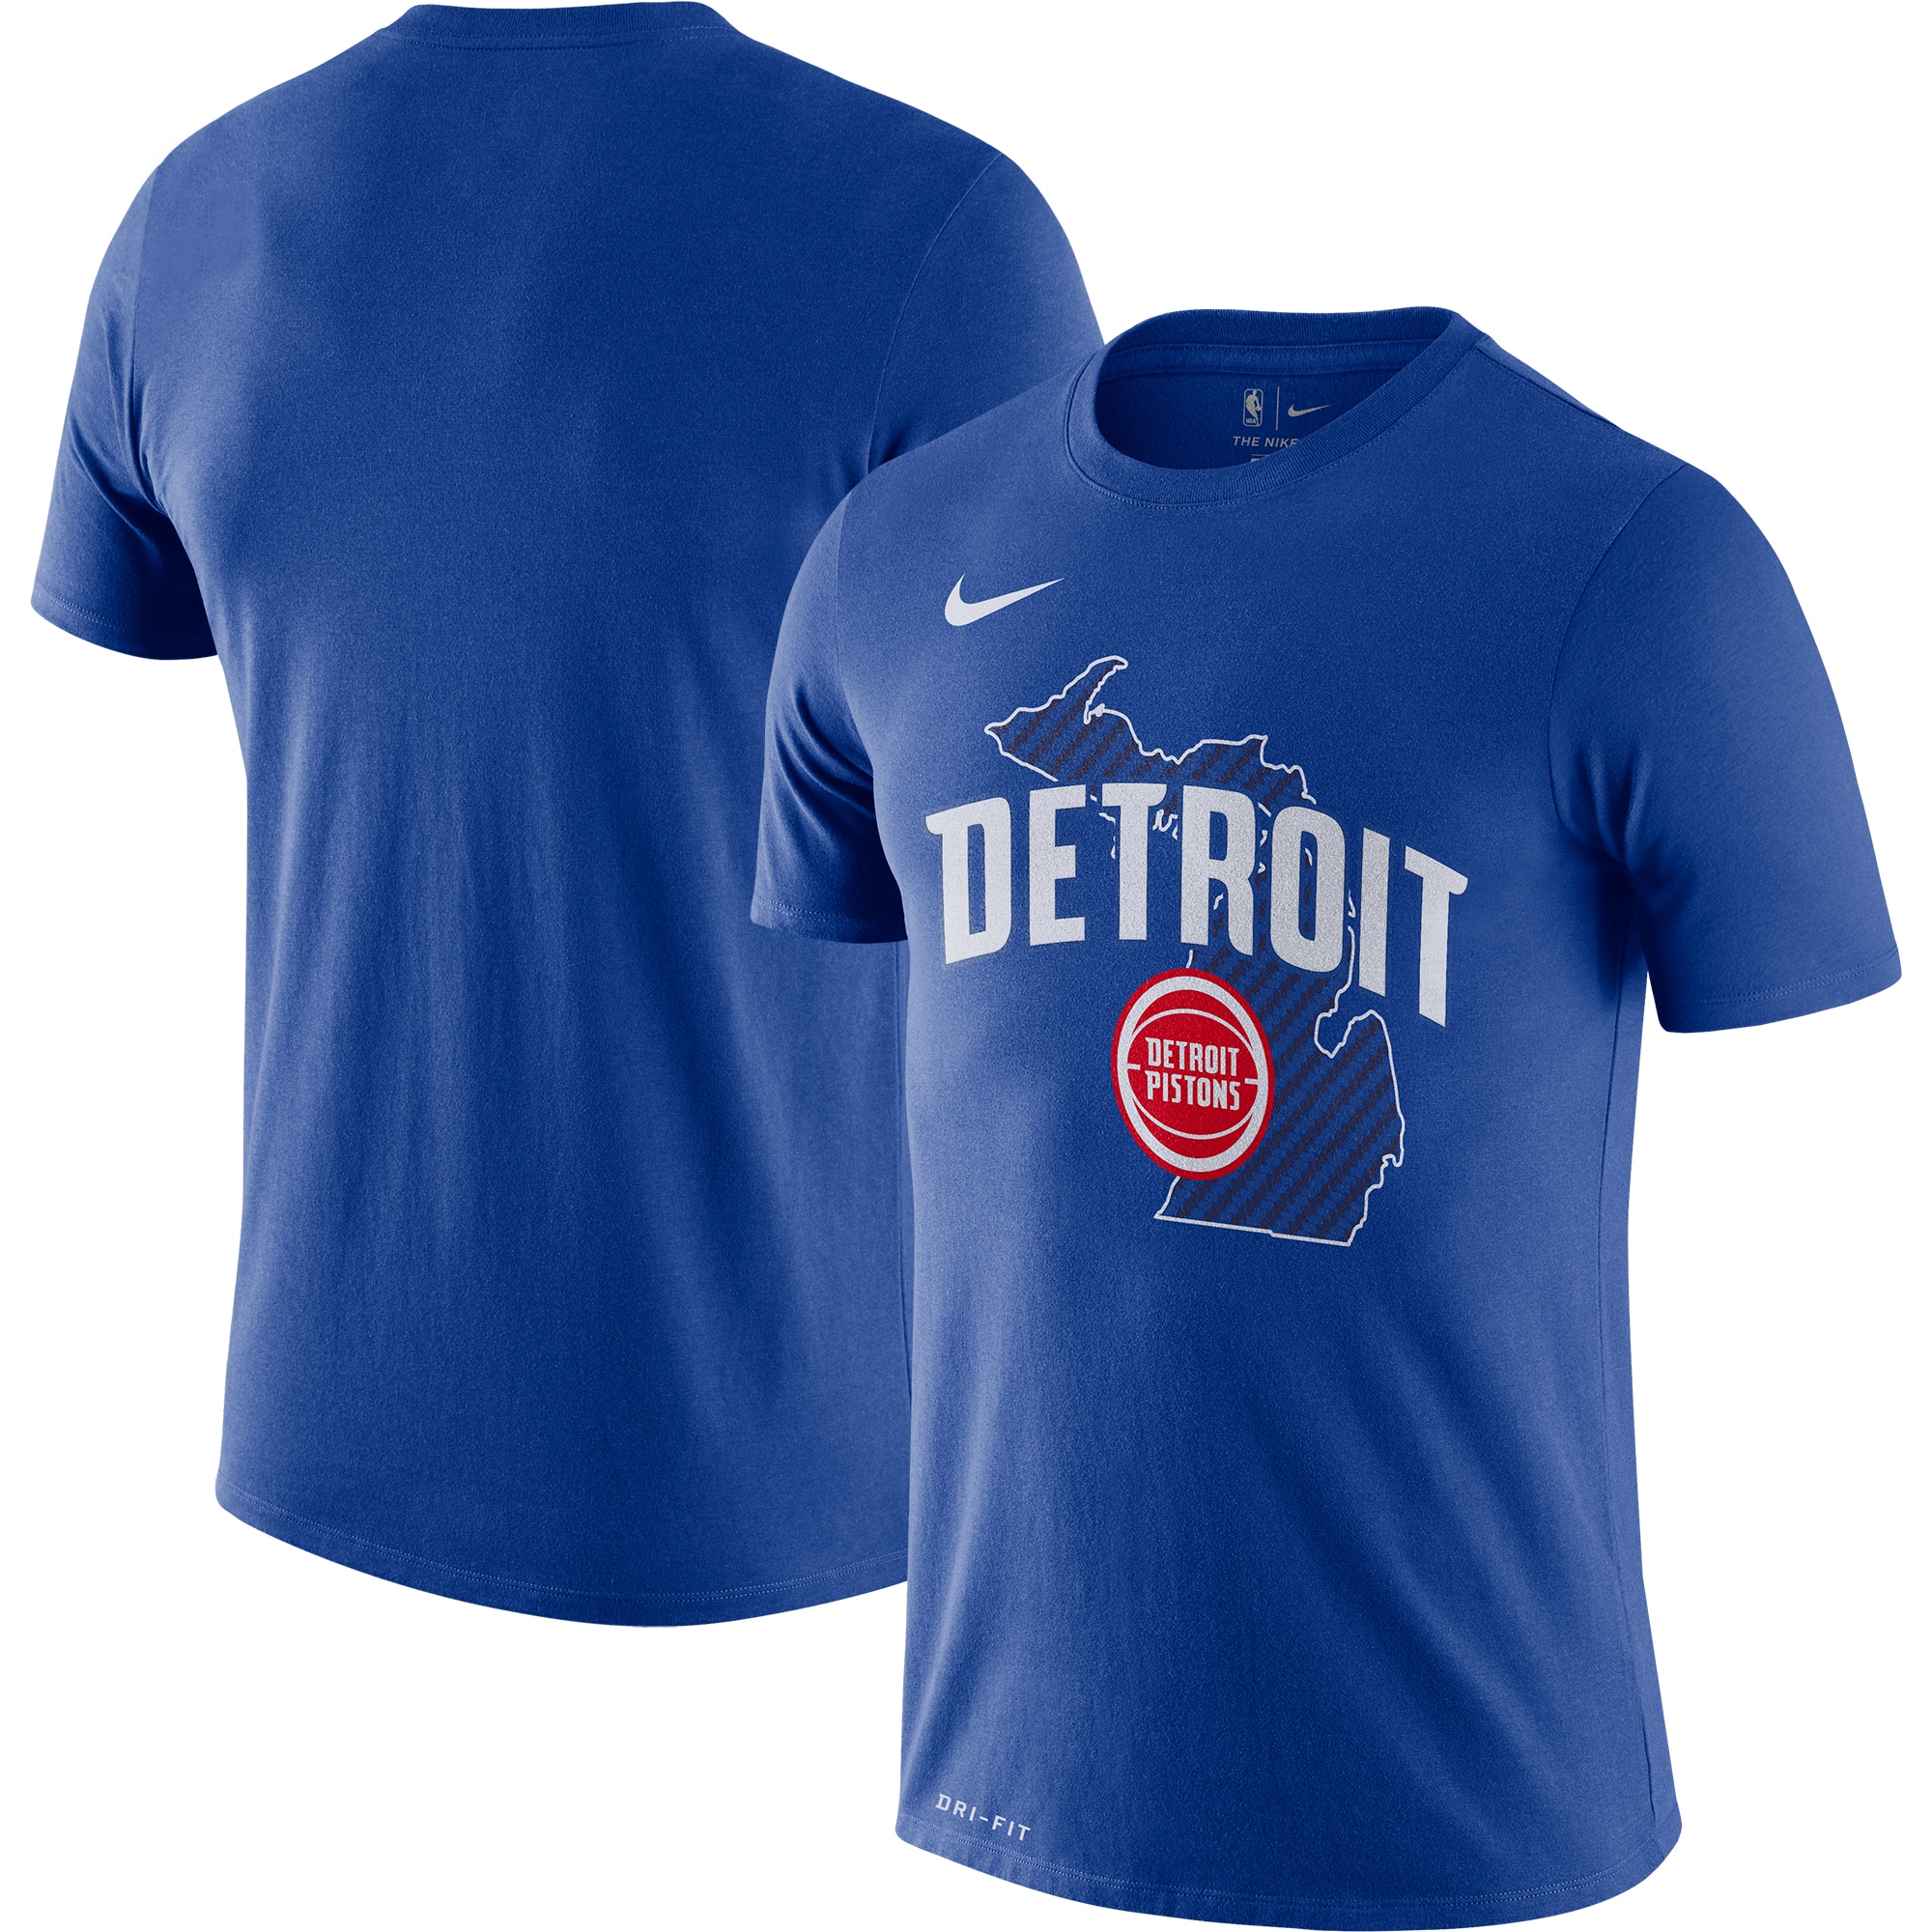 Detroit Pistons Nike 2019/20 City Edition Hometown Performance T-Shirt - Blue